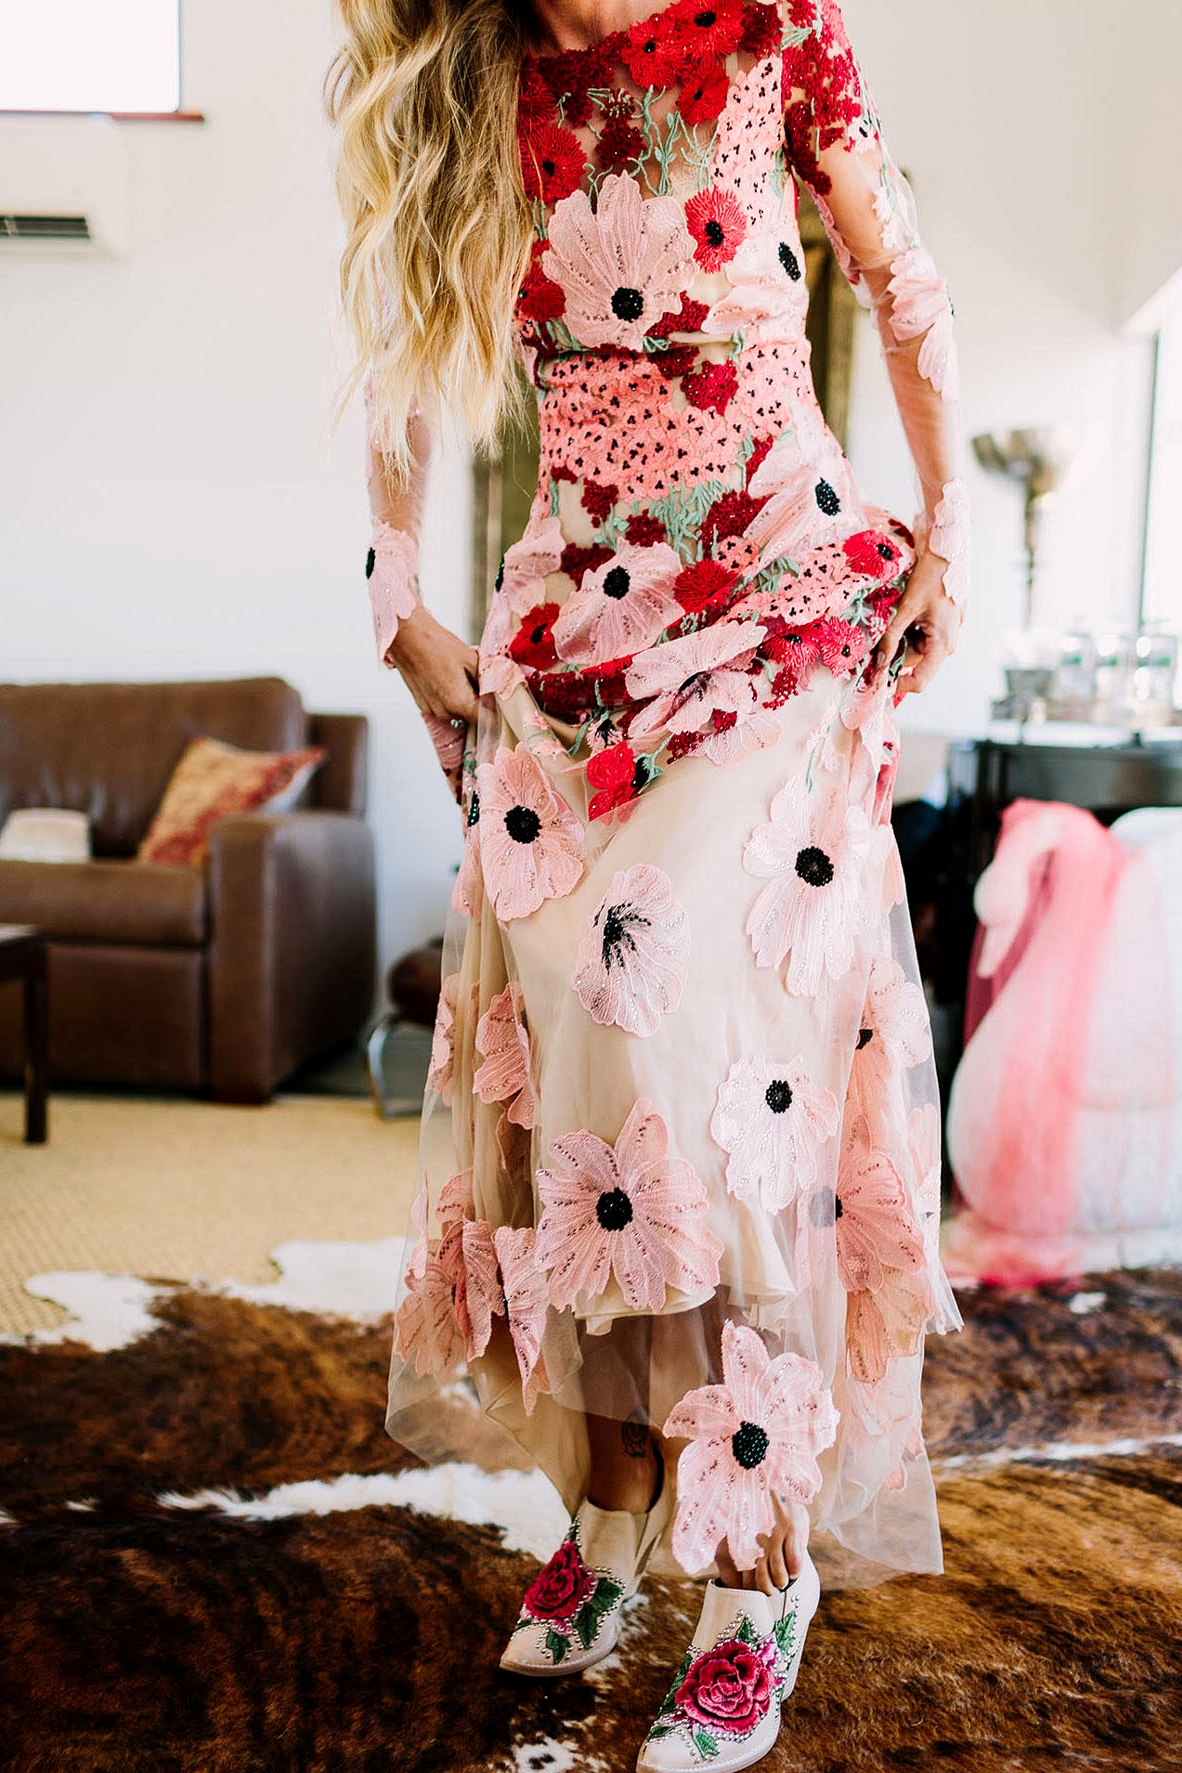 Red and pink floral embroidered wedding dress